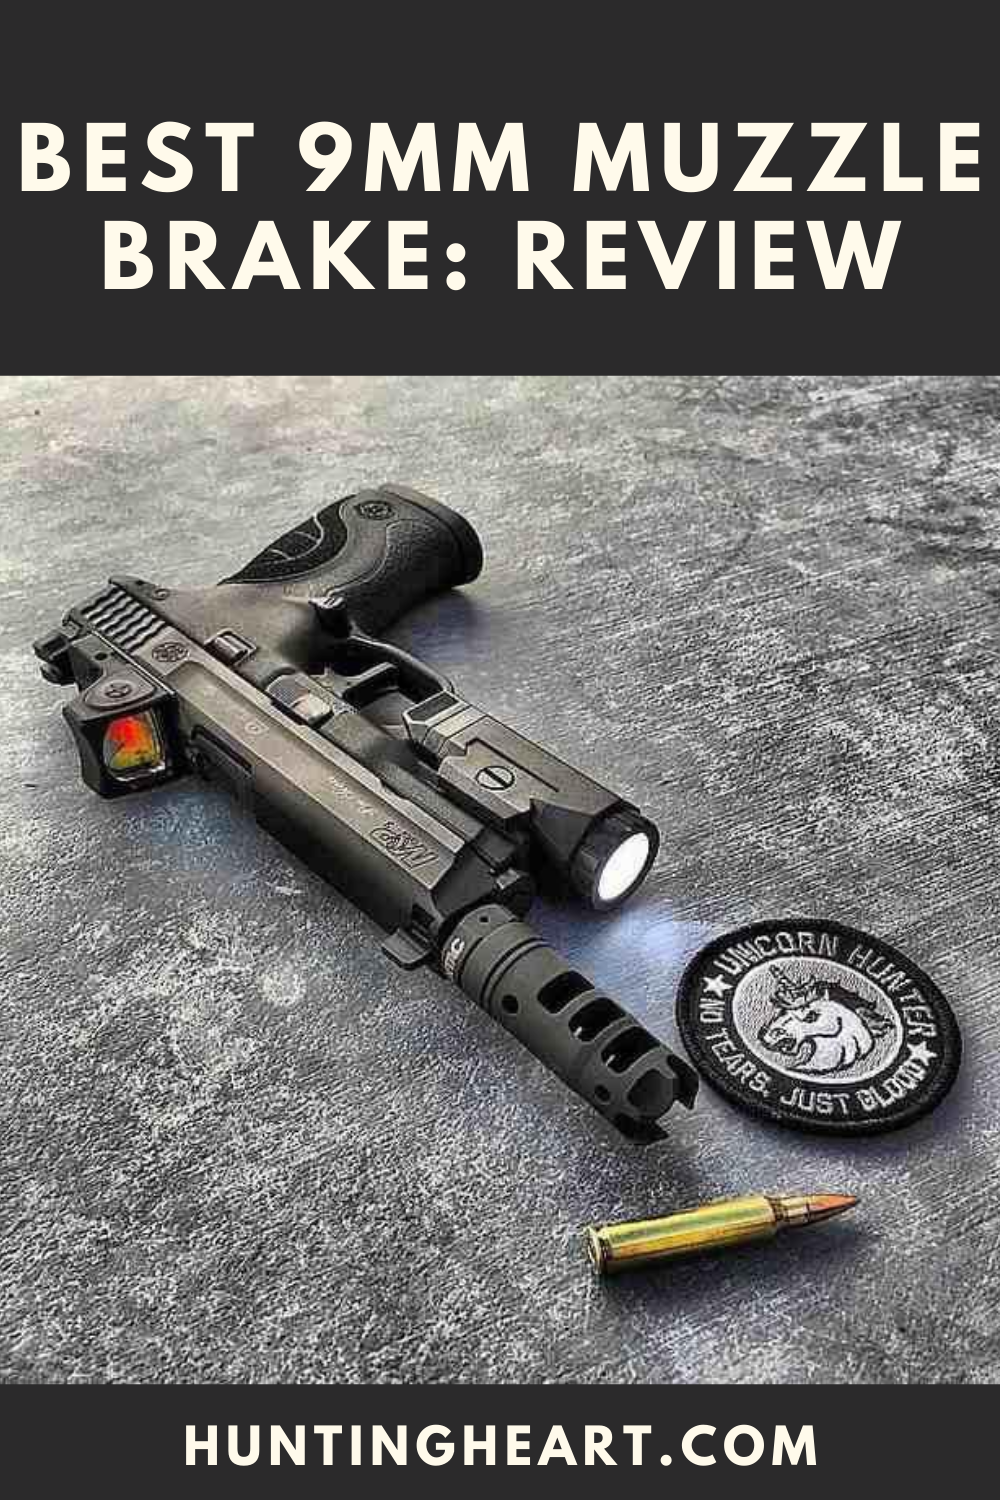 Pin On Best Air Rifle And Guns Review